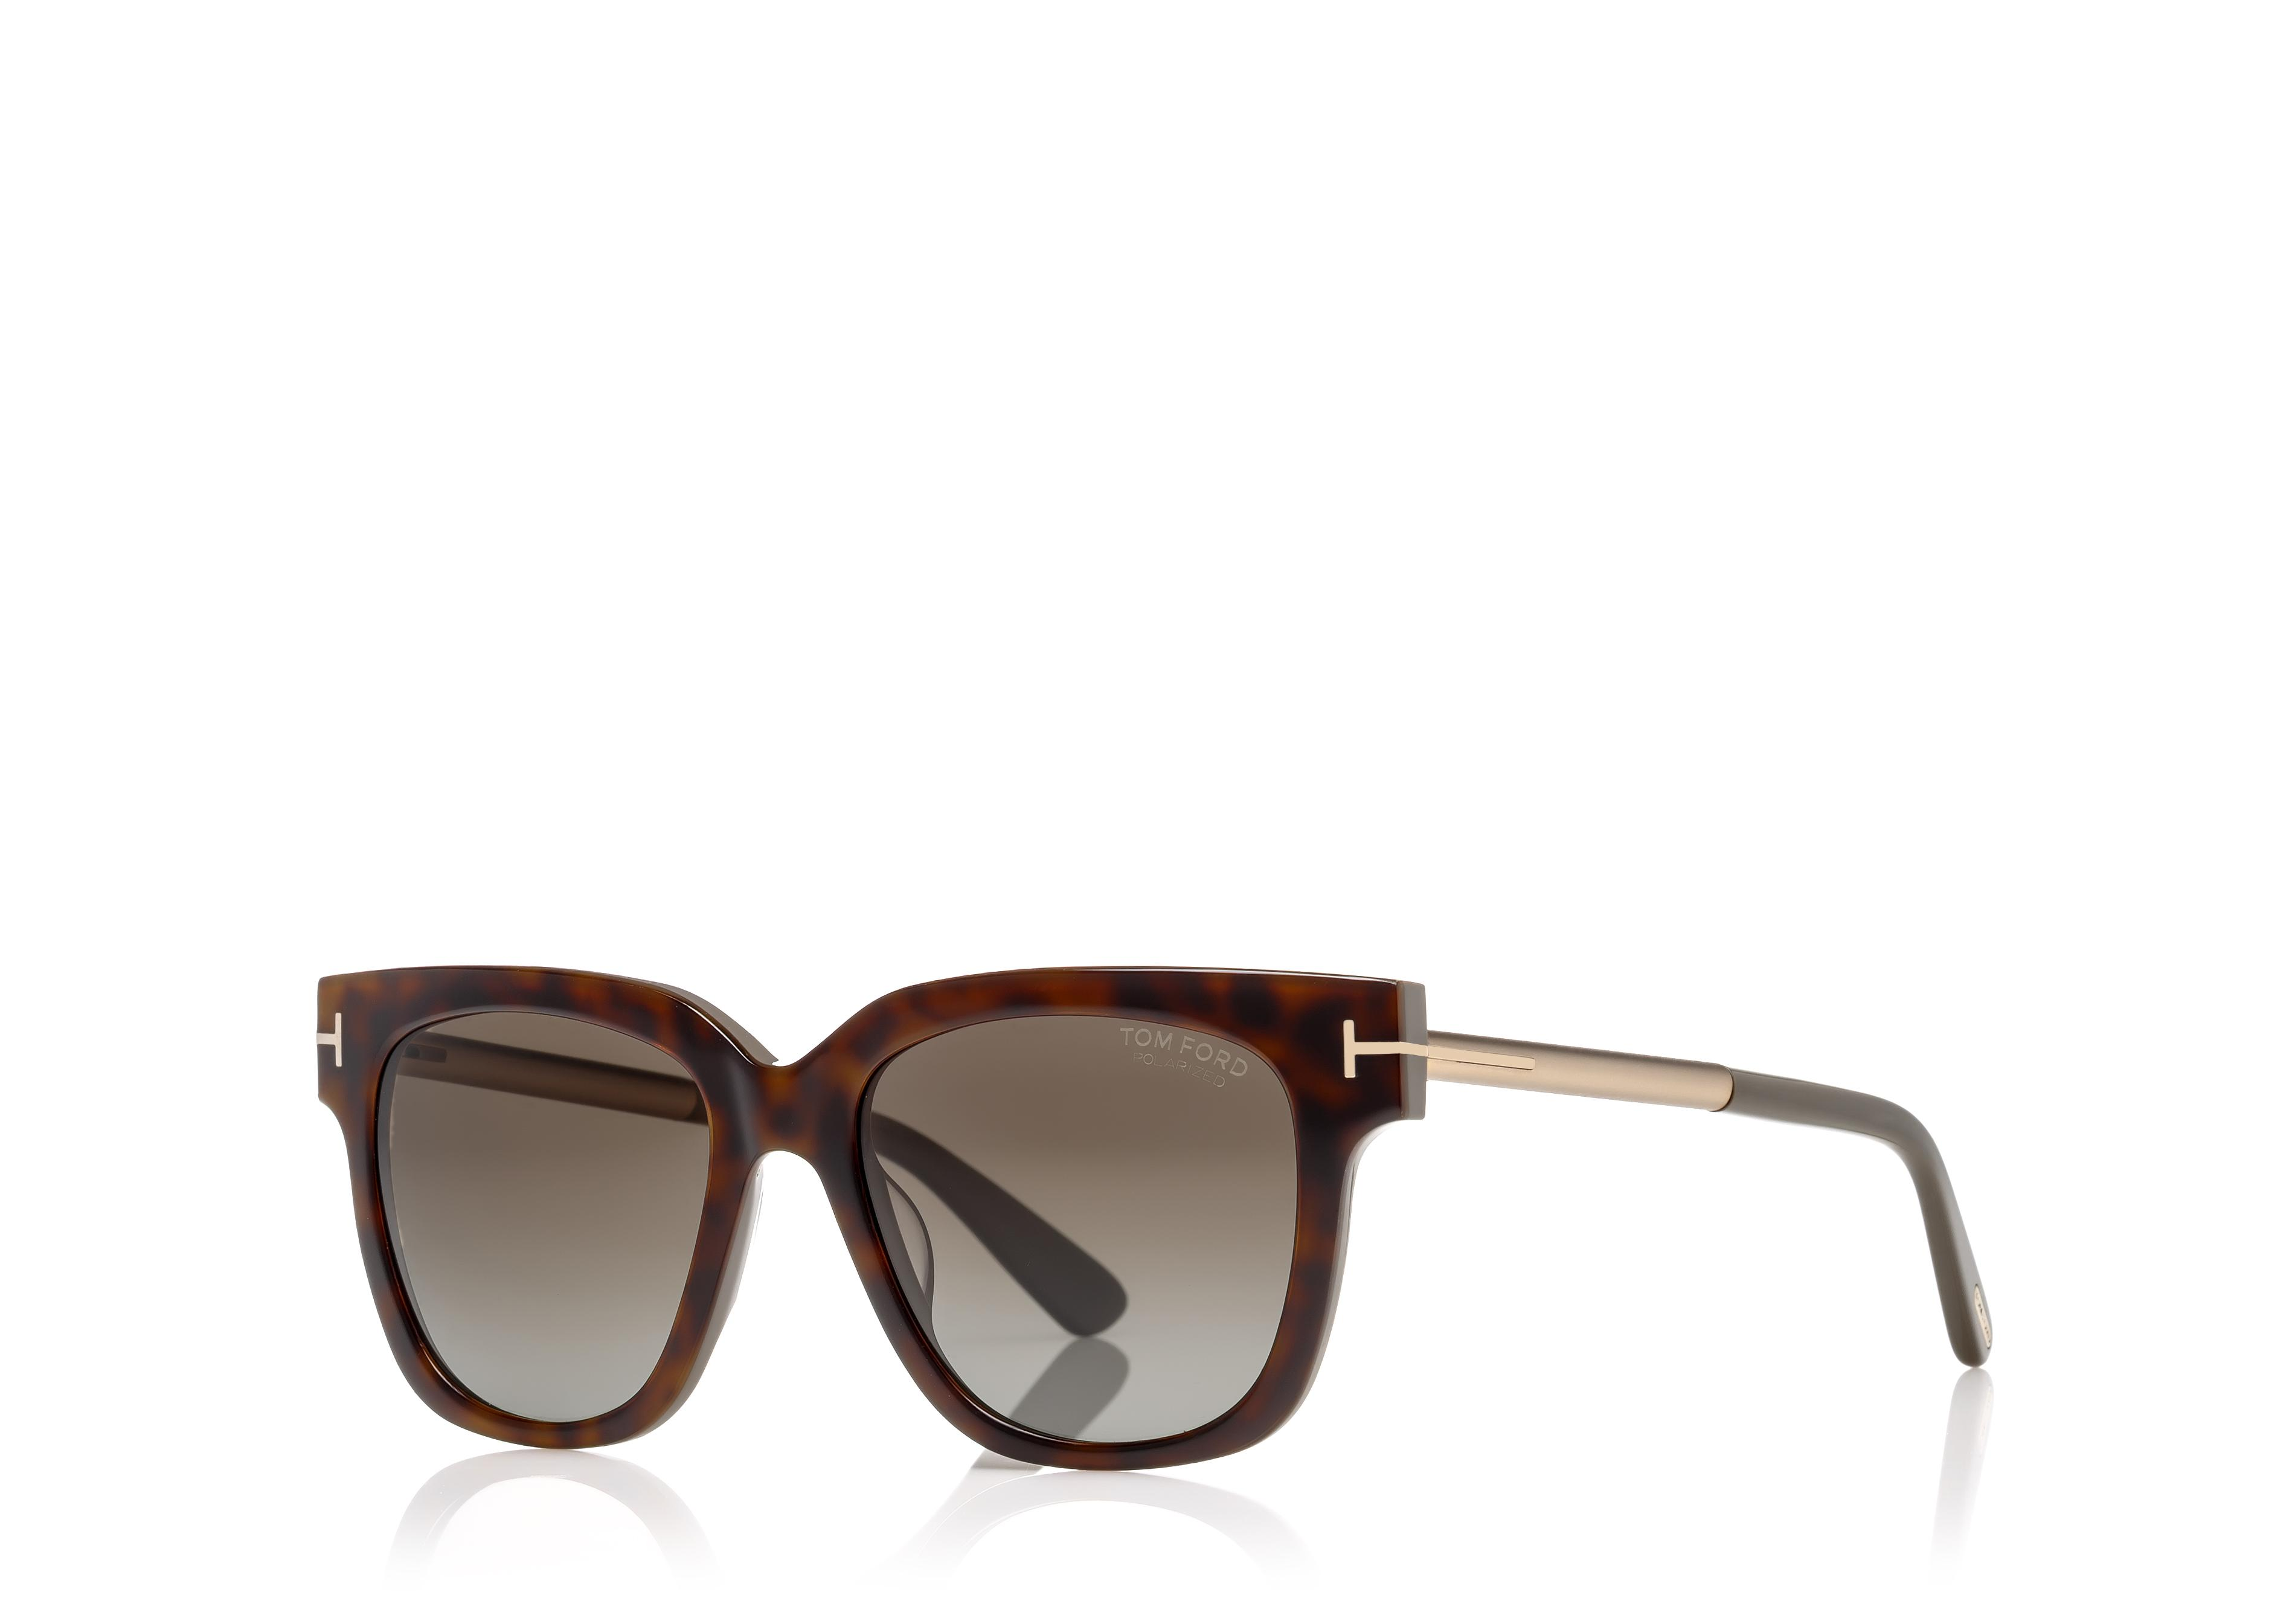 TRACY SUNGLASSES POLARIZED C thumbnail